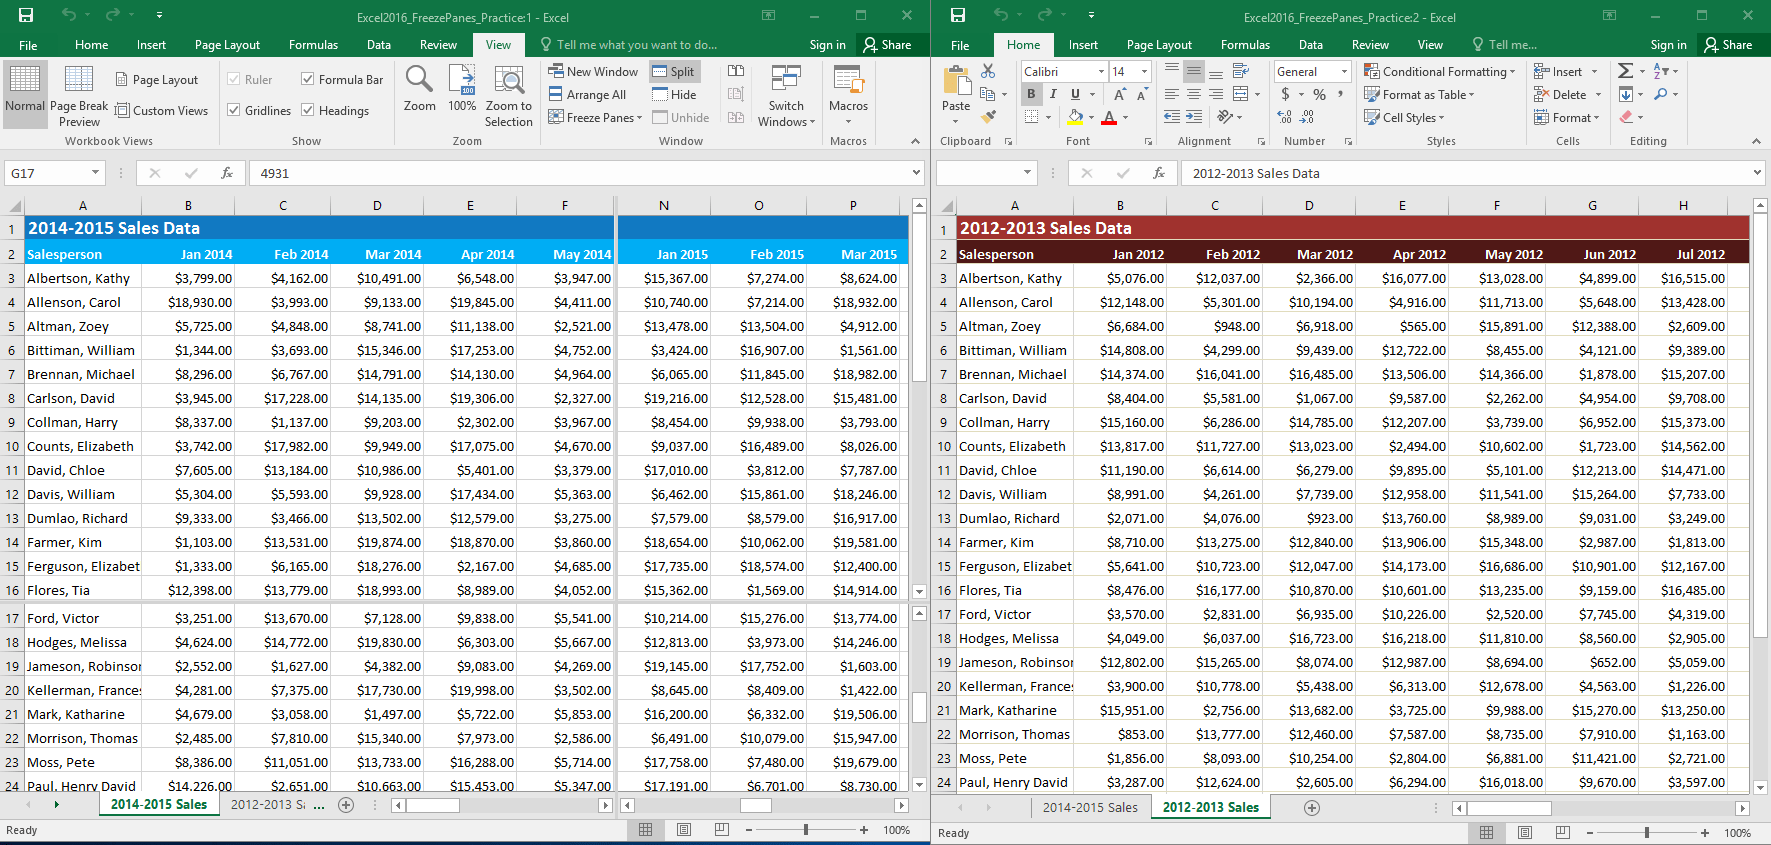 Excel Freezing Panes And View Options